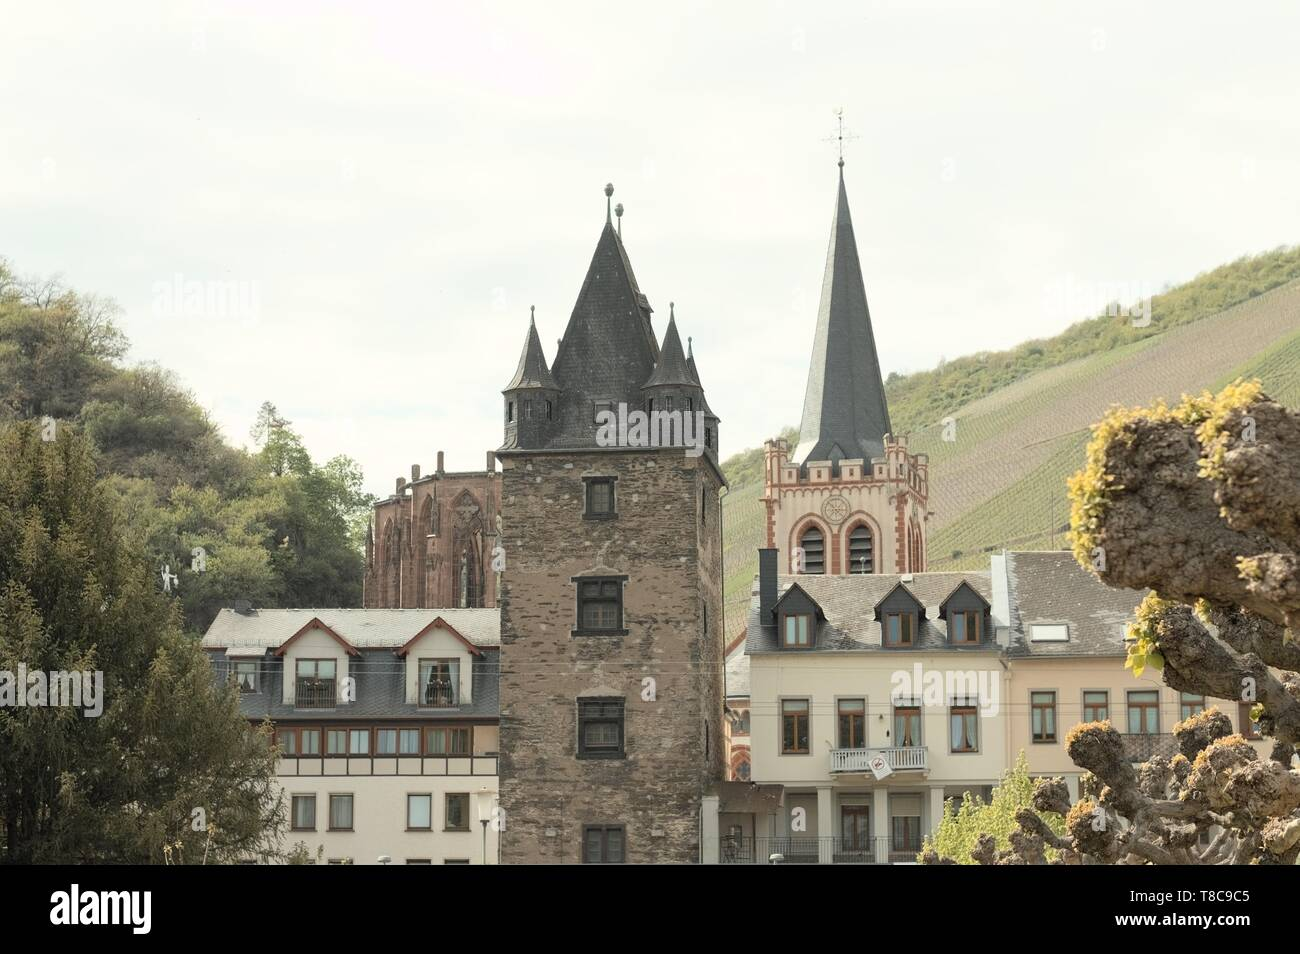 View of the medieval town of Bacharach (Germany, Europe) Stock Photo